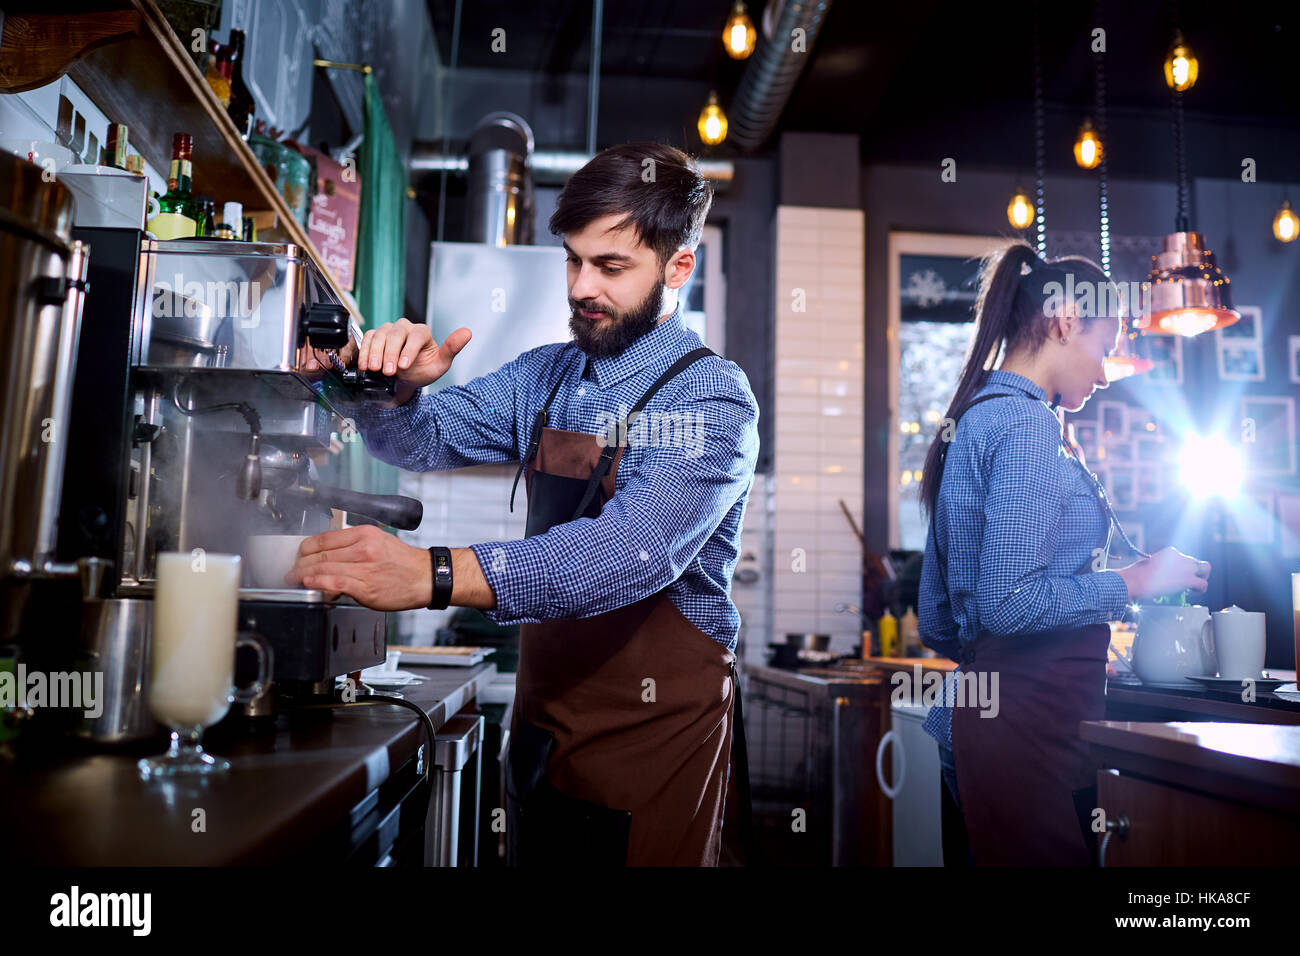 Barman barista uniform making coffee tea cocktails in the bar, r - Stock Image